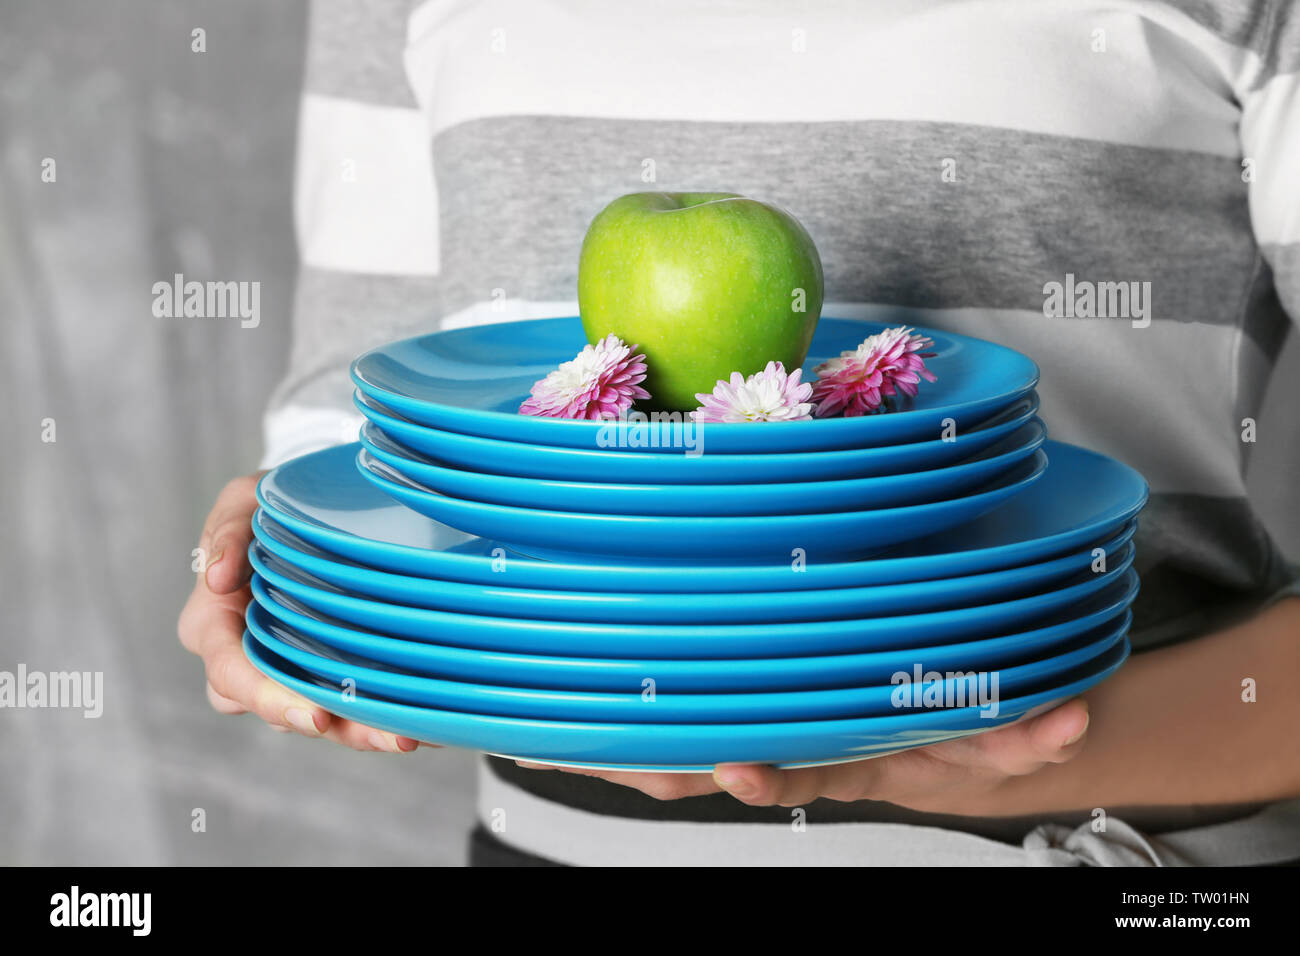 Female hands holding dishes, closeup - Stock Image